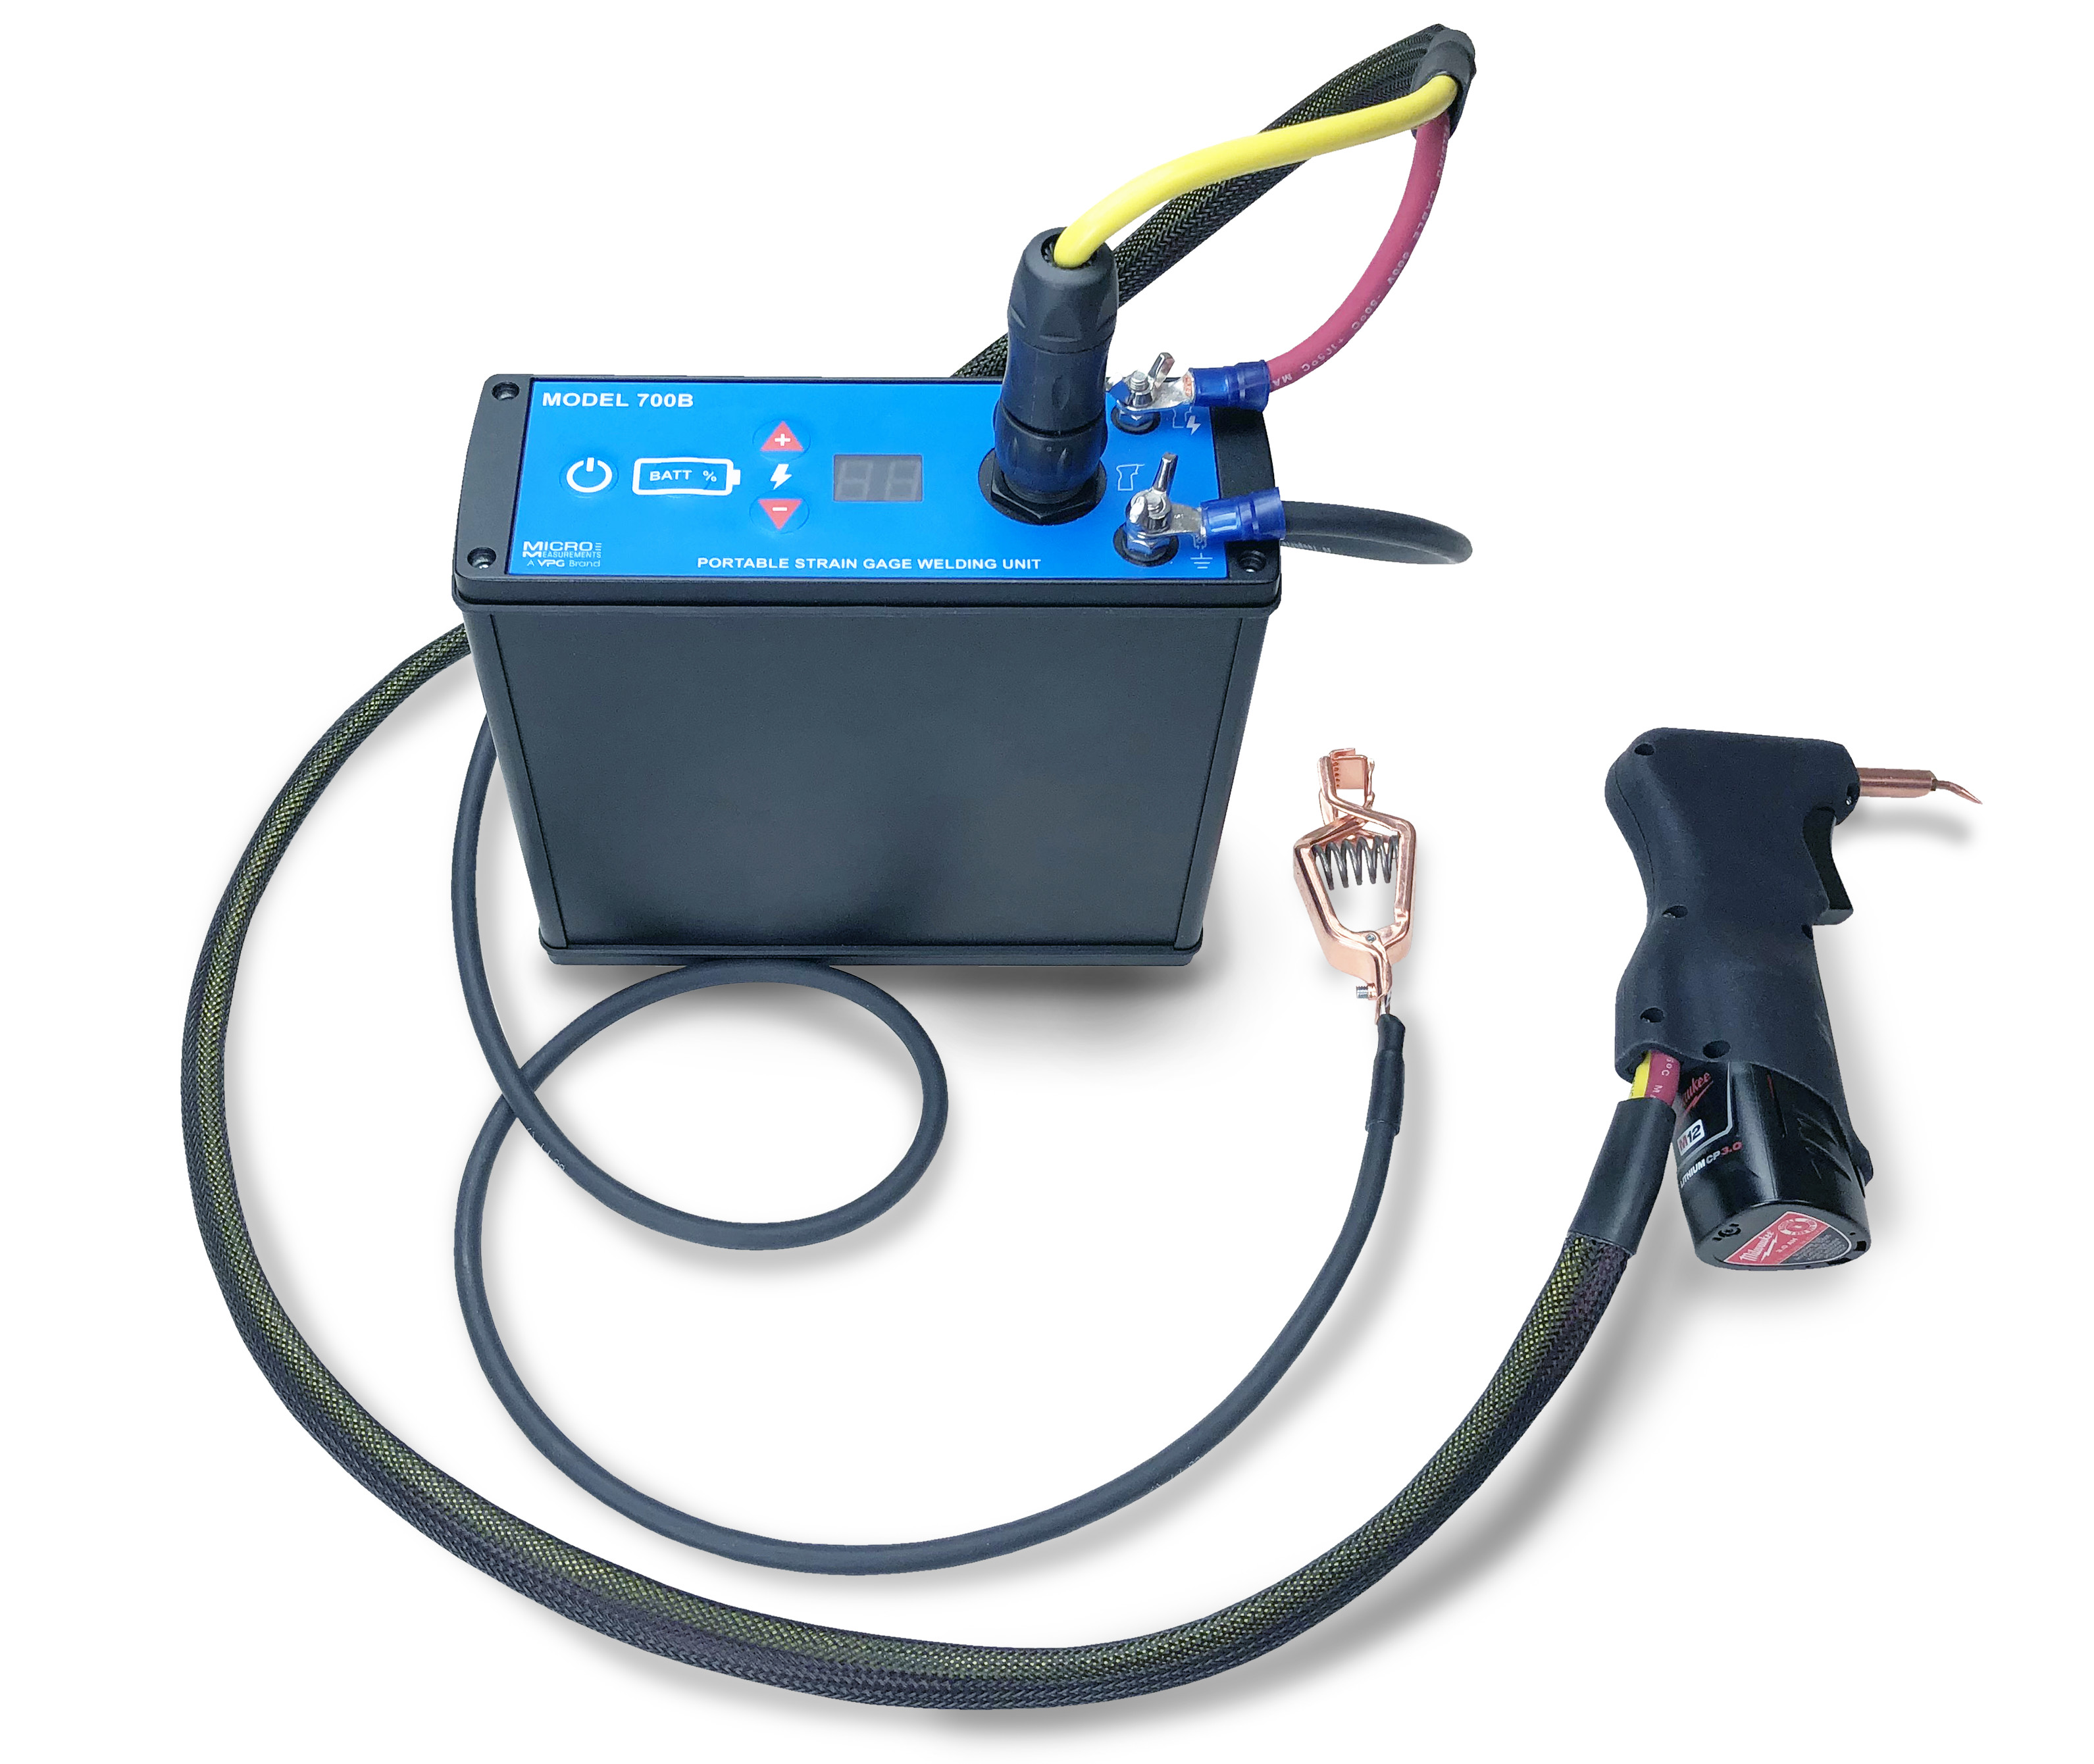 700B Welder_Fully assembled kit_IMG_0220-hpr